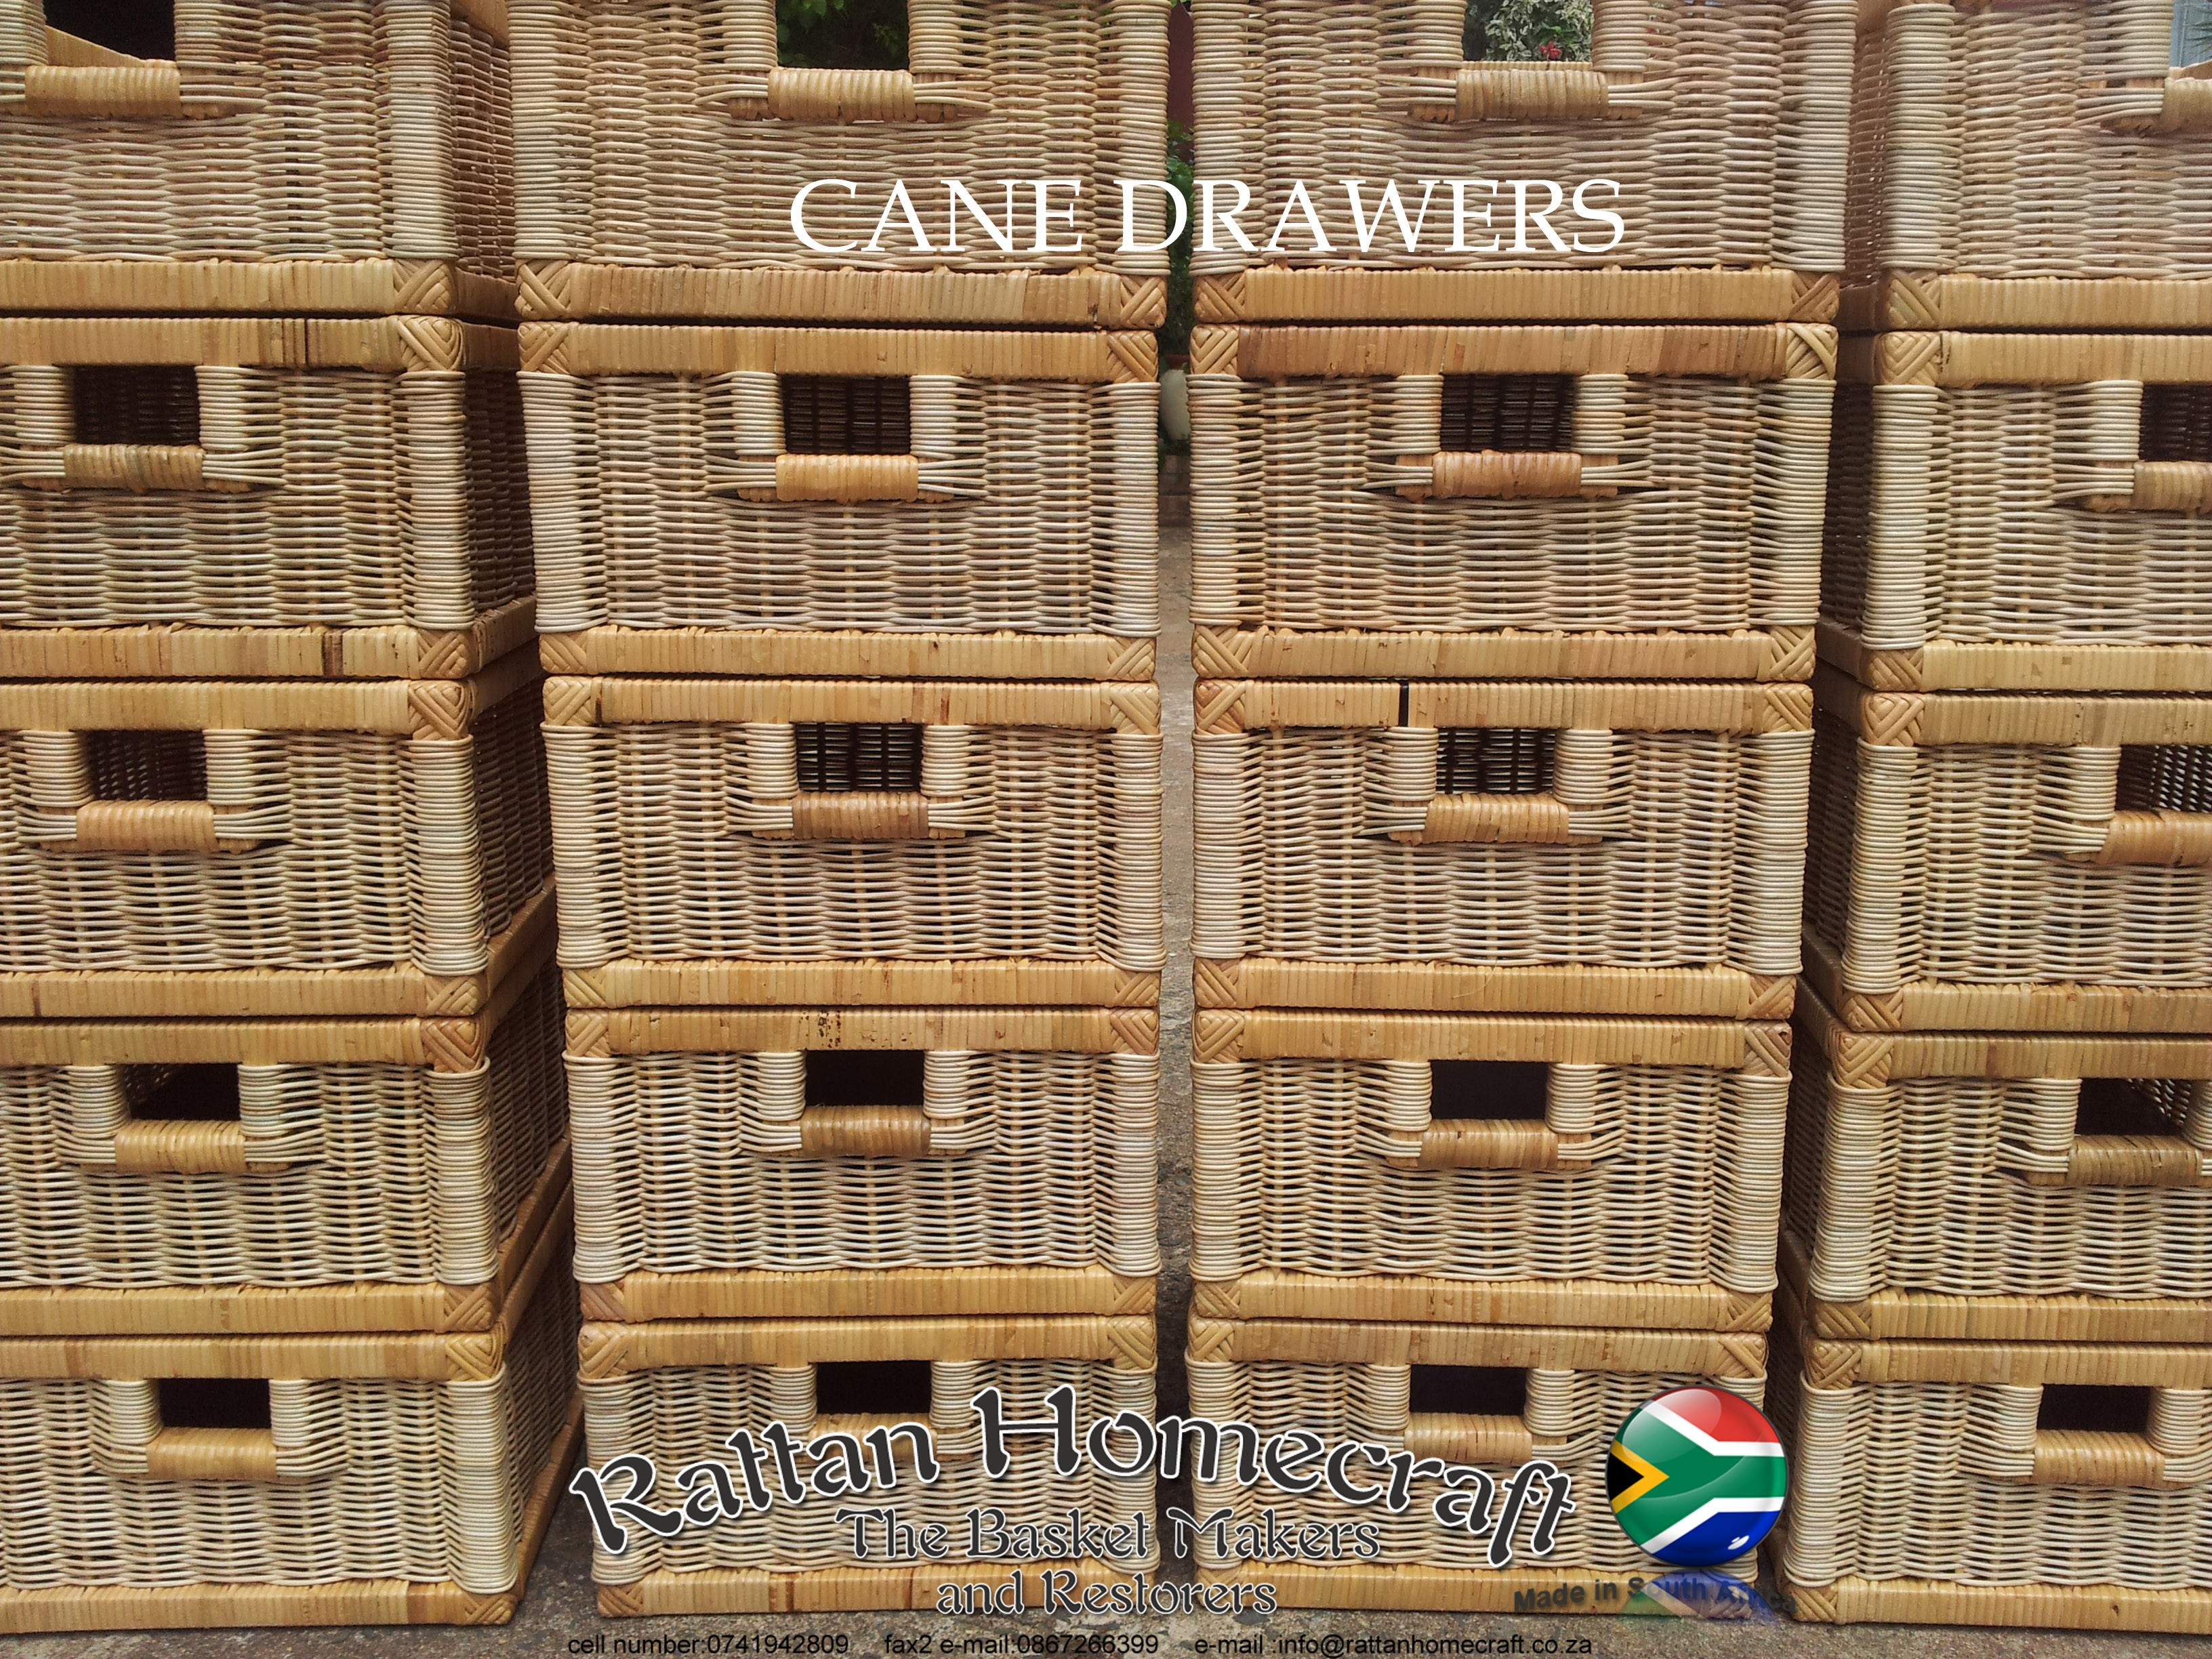 3 Cane Drawers